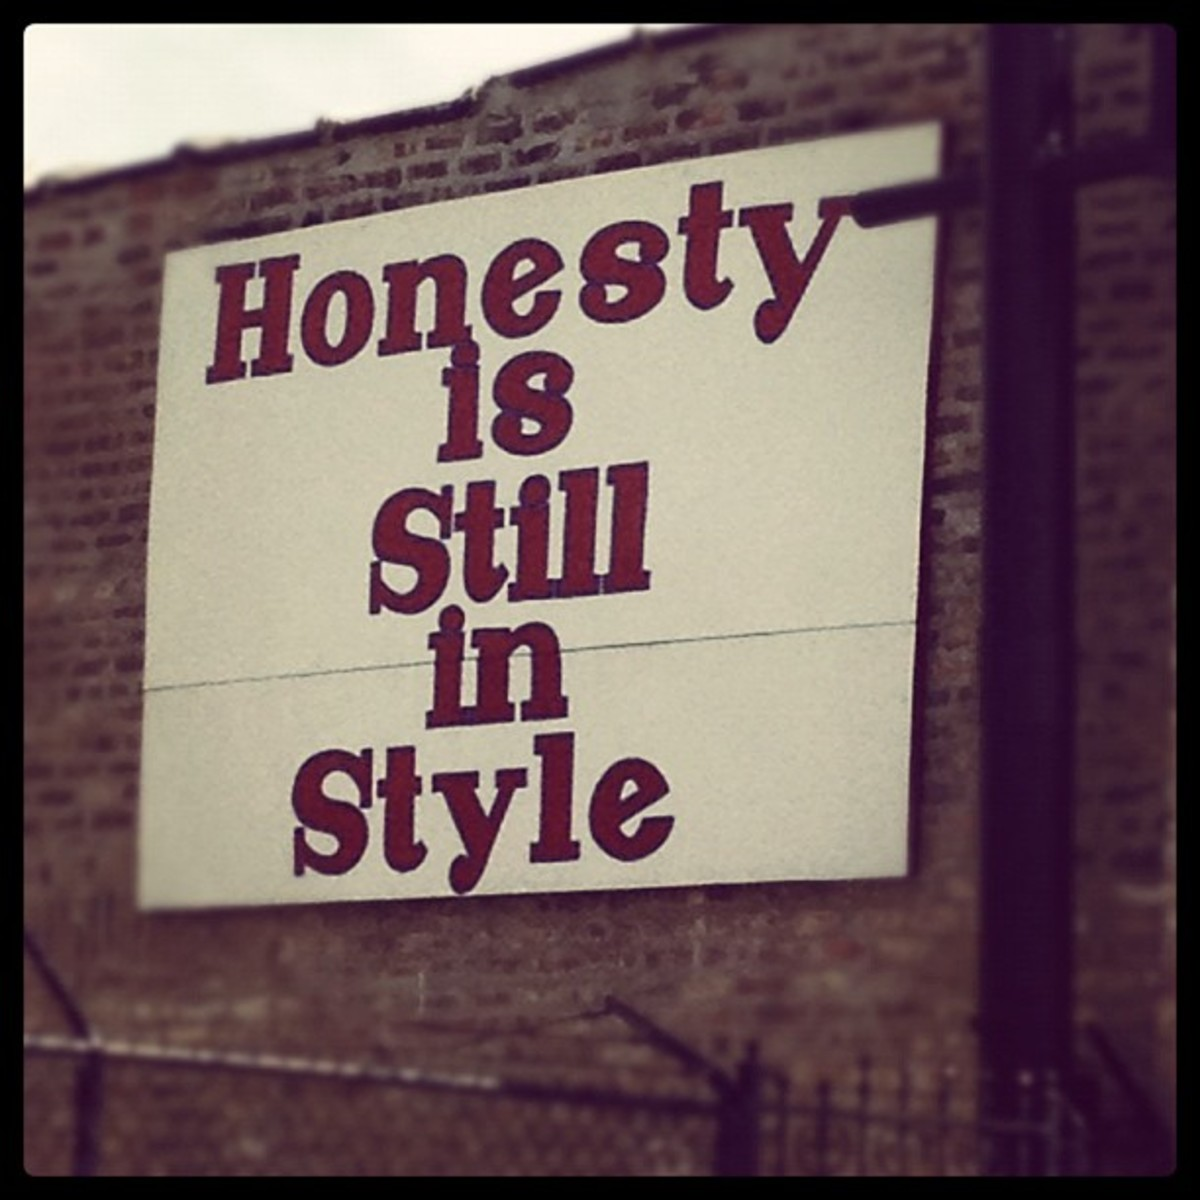 Honesty is still in style.  Take the Honesty for a Week Challenge and report back your experience.  No lies for convenience, no white lies, just the unvarnished truth,